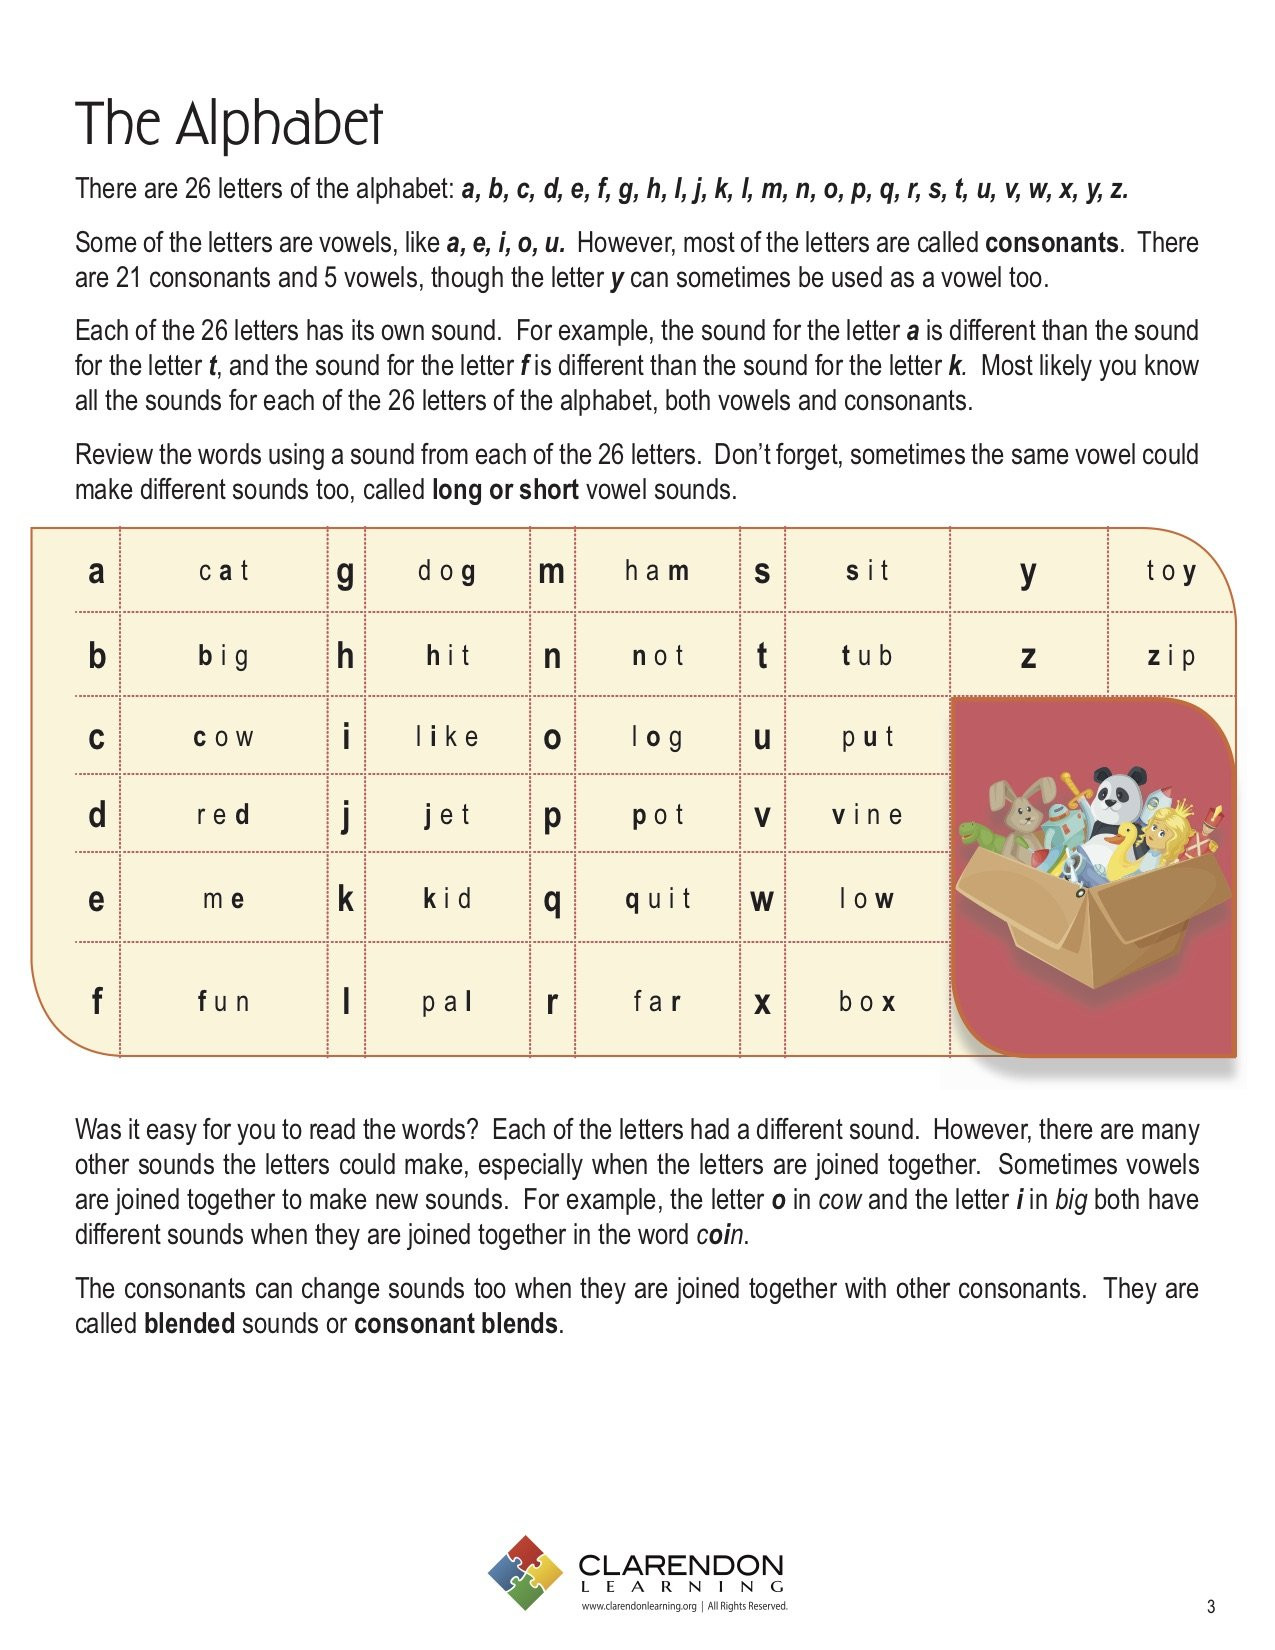 Consonant Blends Worksheets 3rd Grade Consonant Blends 2 Letter Lesson Plan